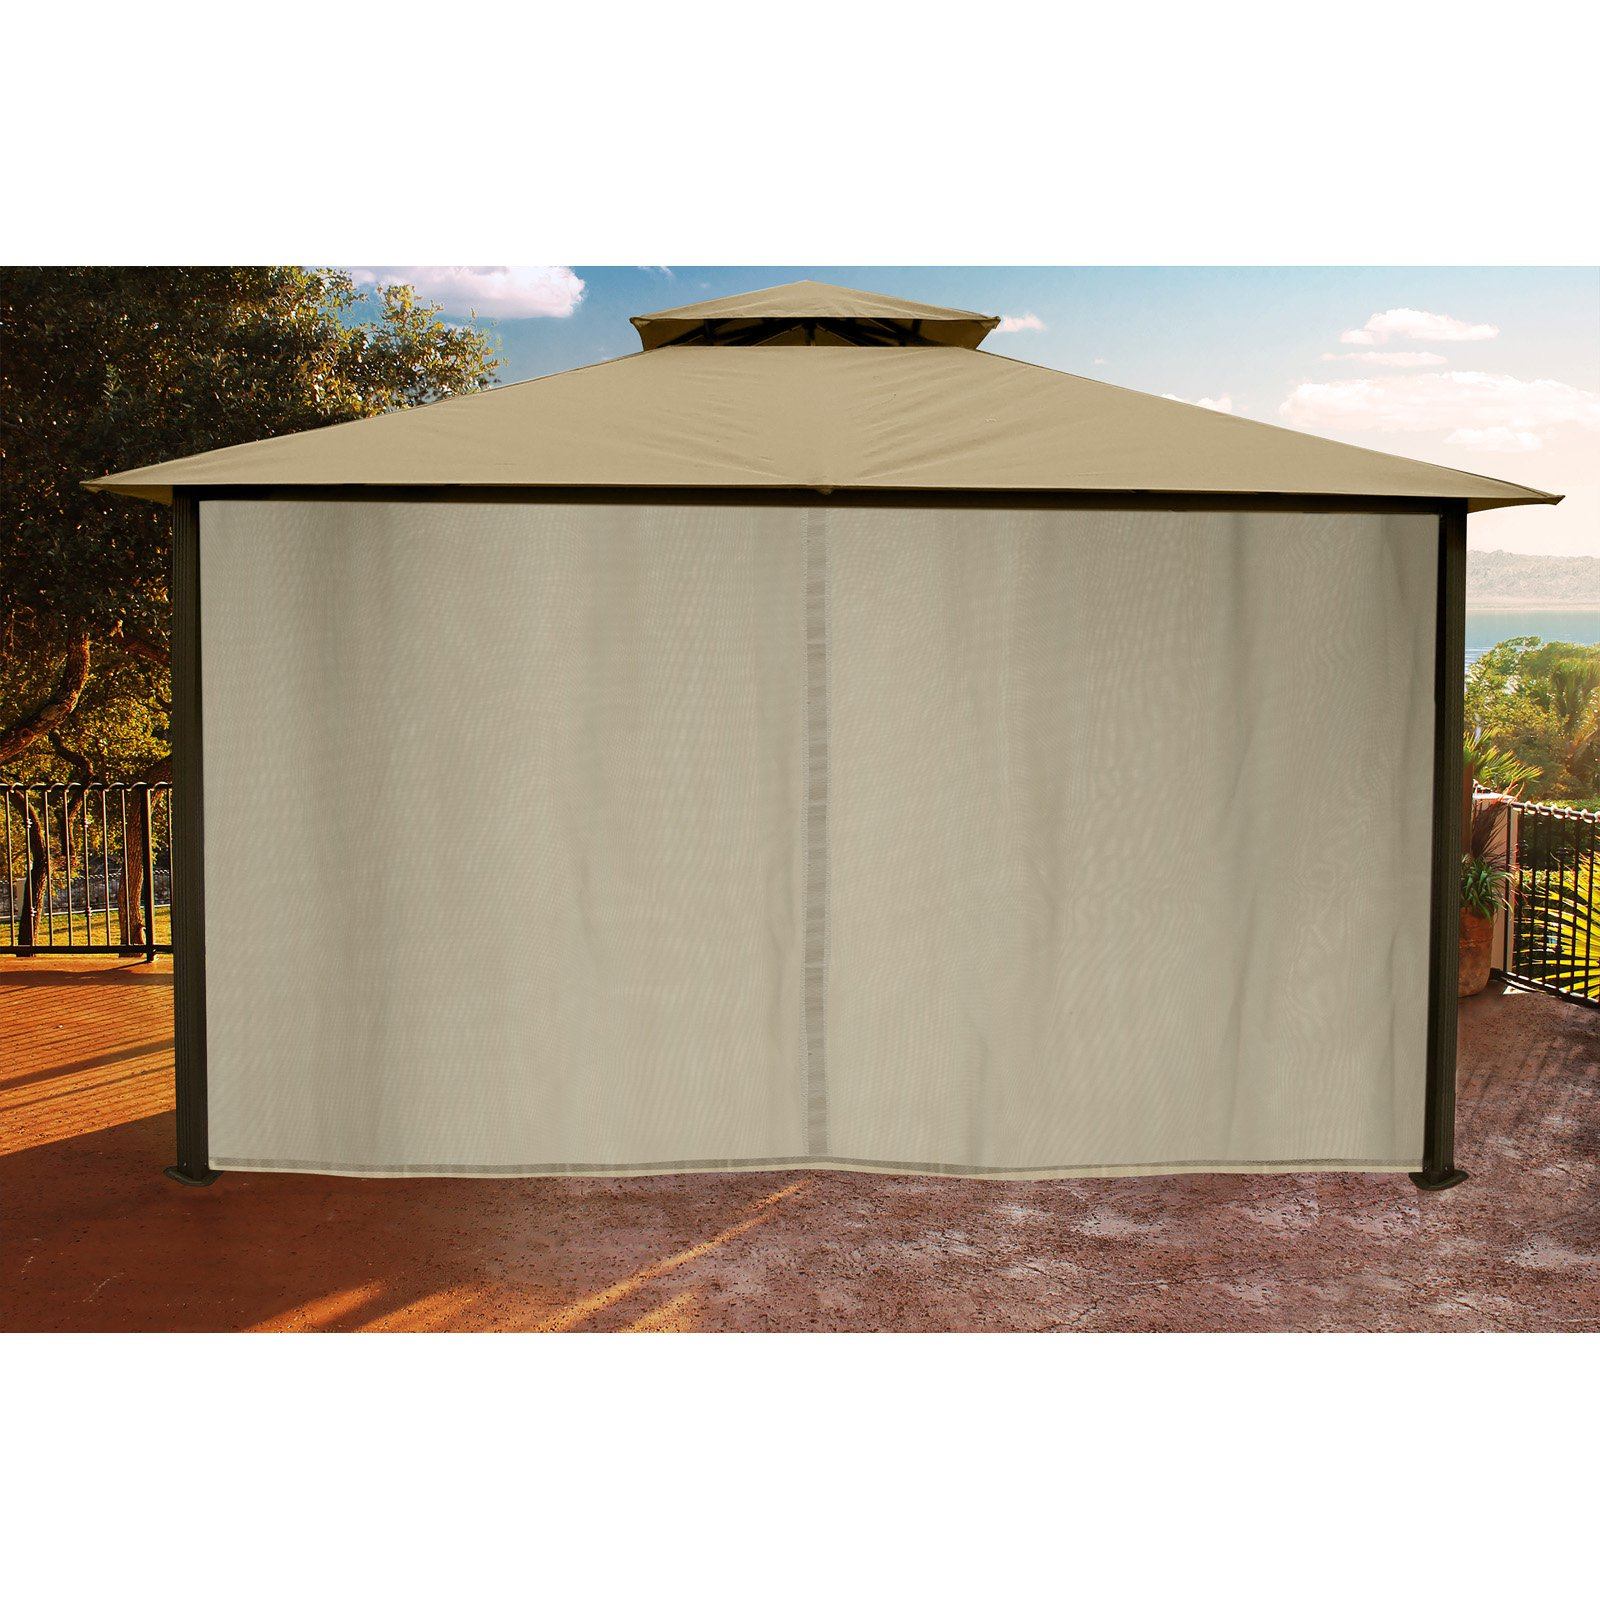 Carolina 10' x 12' Gazebo with Sand Color Top and Privacy Curtains and Mosquito Netting